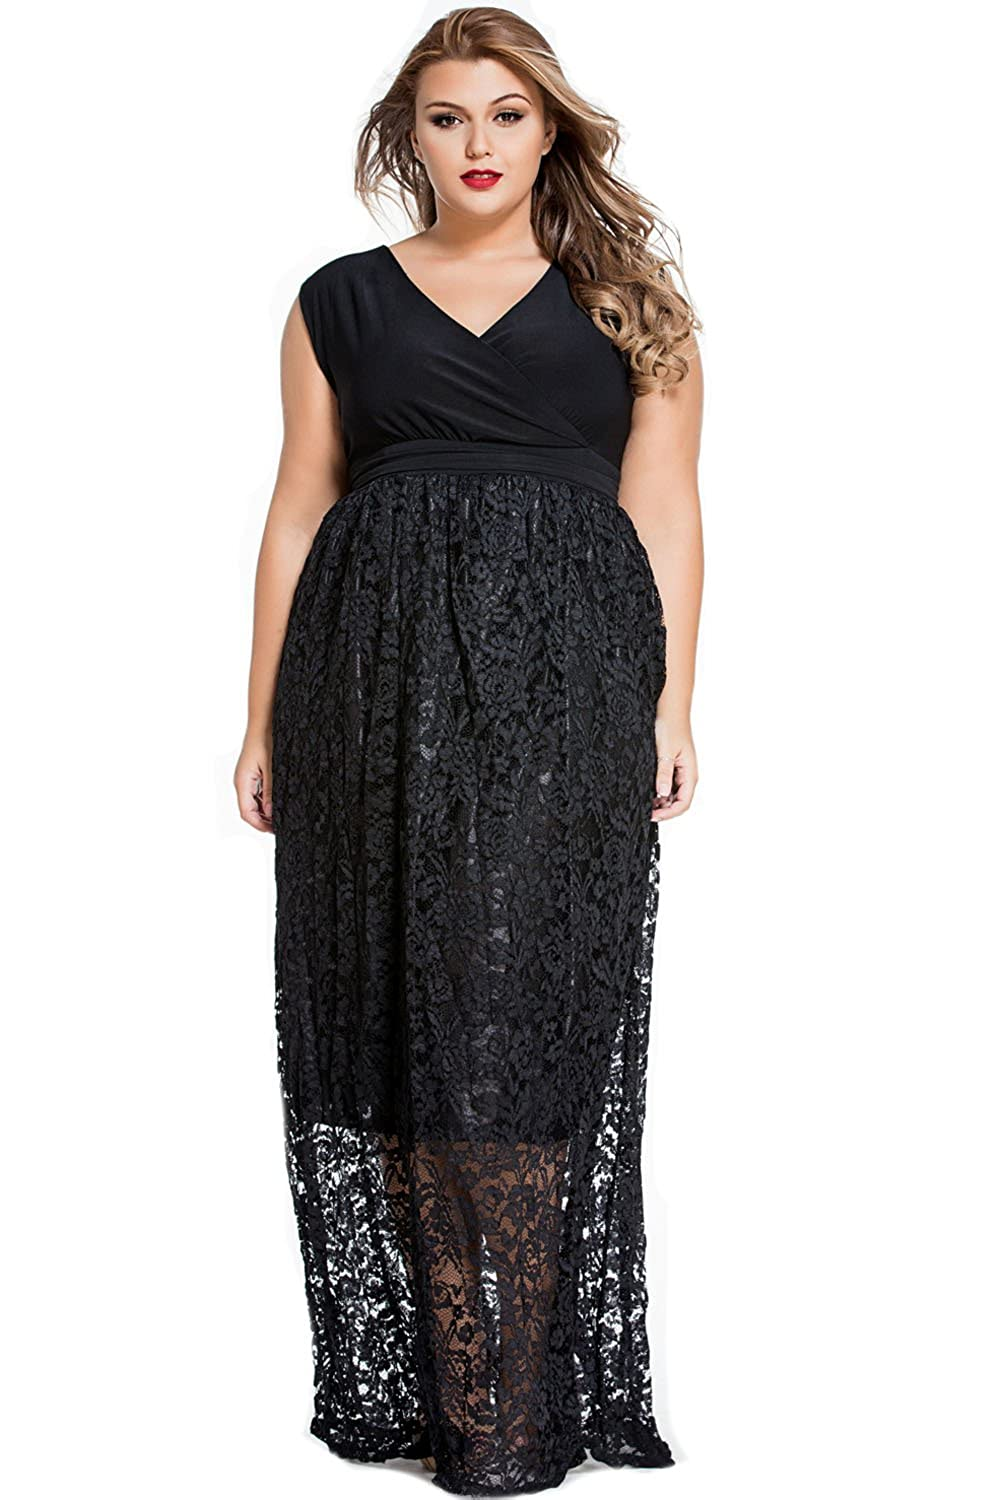 E S U Stylish Black Lace Special Occasion Plus Size Dress Black at Amazon Women s  Clothing store  b936542bfb3d